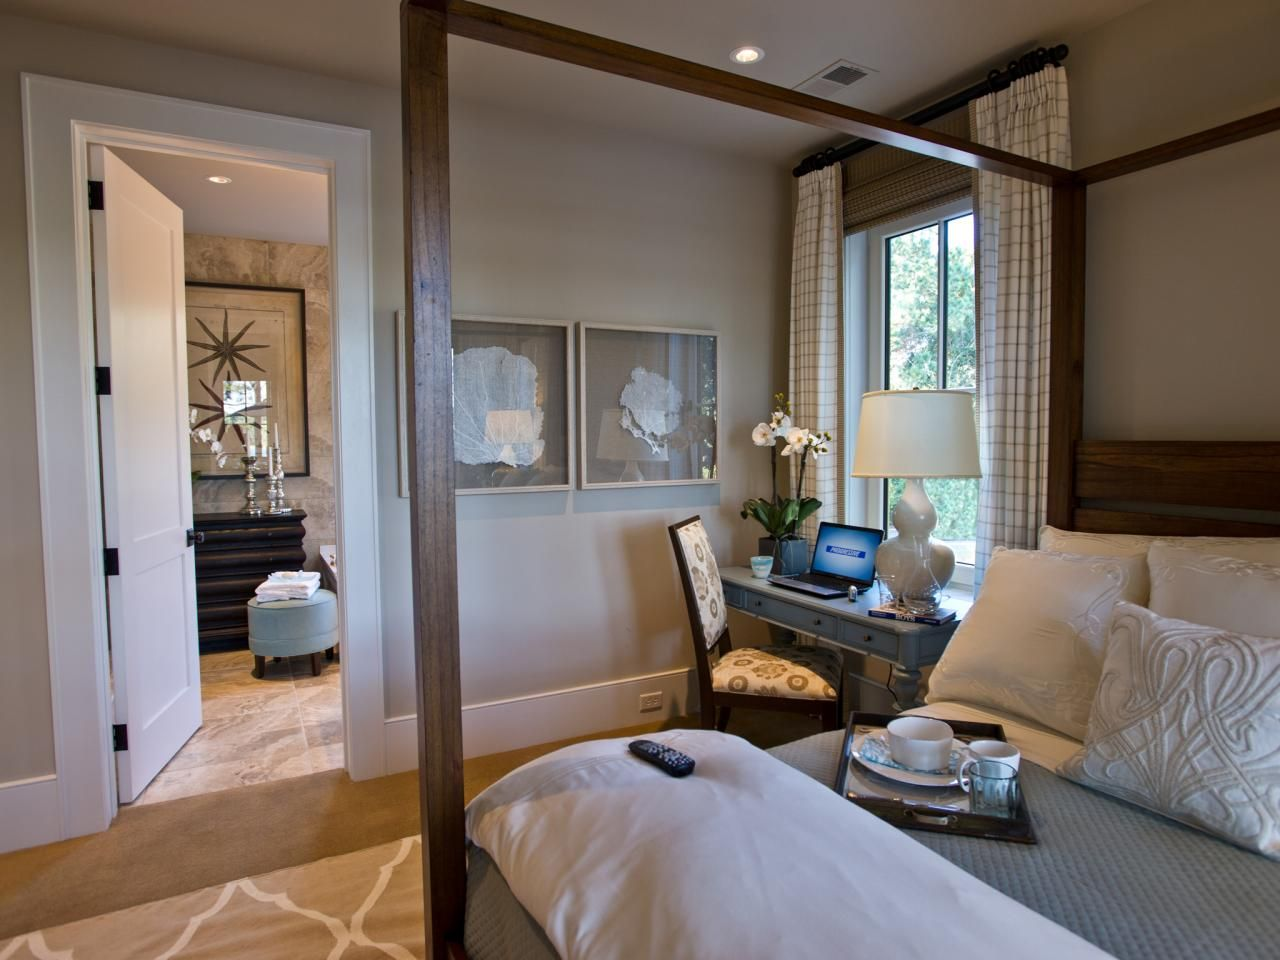 This modern master bedroom features a dreamy neutral color ...